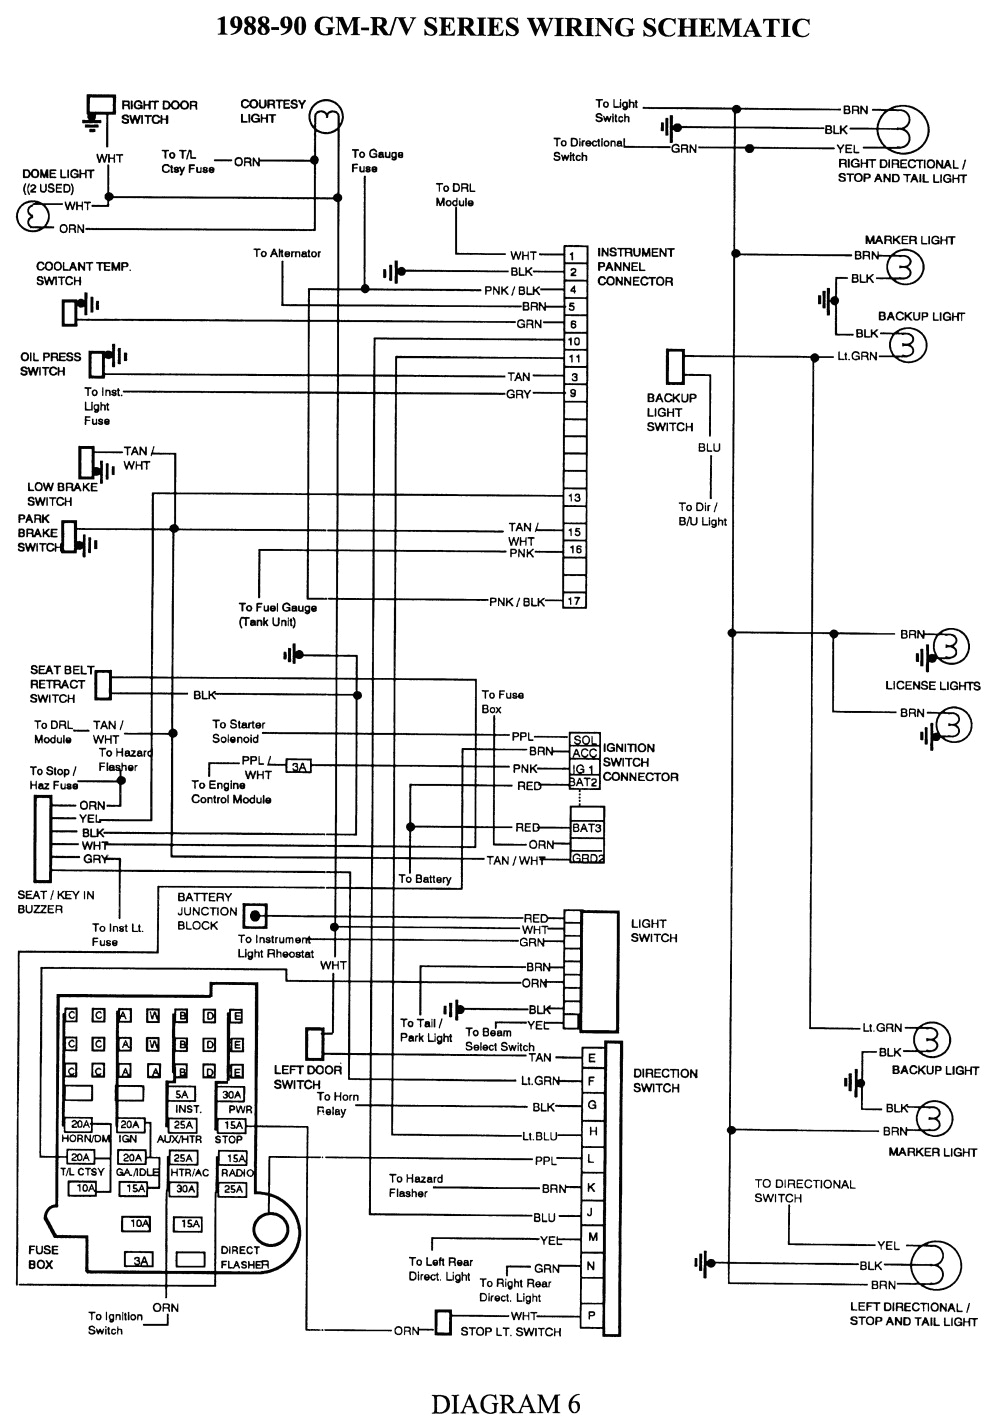 2001 Chevy Silverado 1500 Wiring Diagram 01 Chevy Truck Wiring Diagram Wiring Diagram